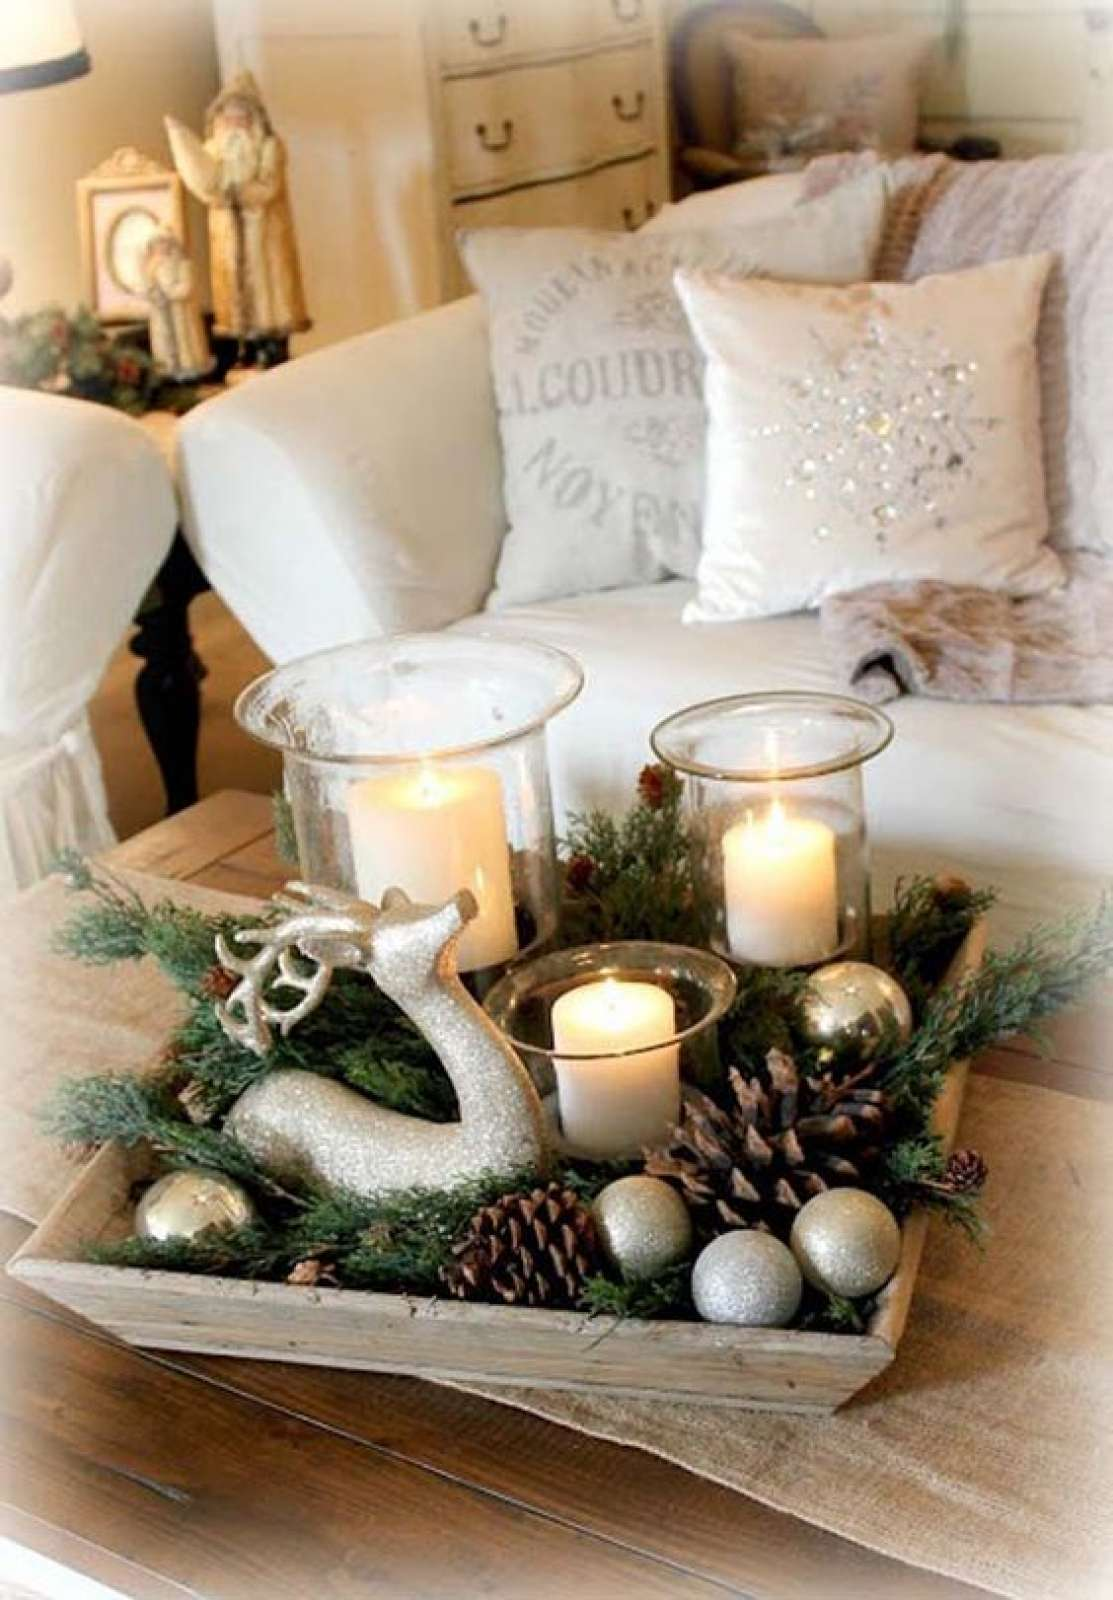 Reindeer Coffee Table Centerpiece & 50 Best DIY Christmas Table Decoration Ideas for 2018